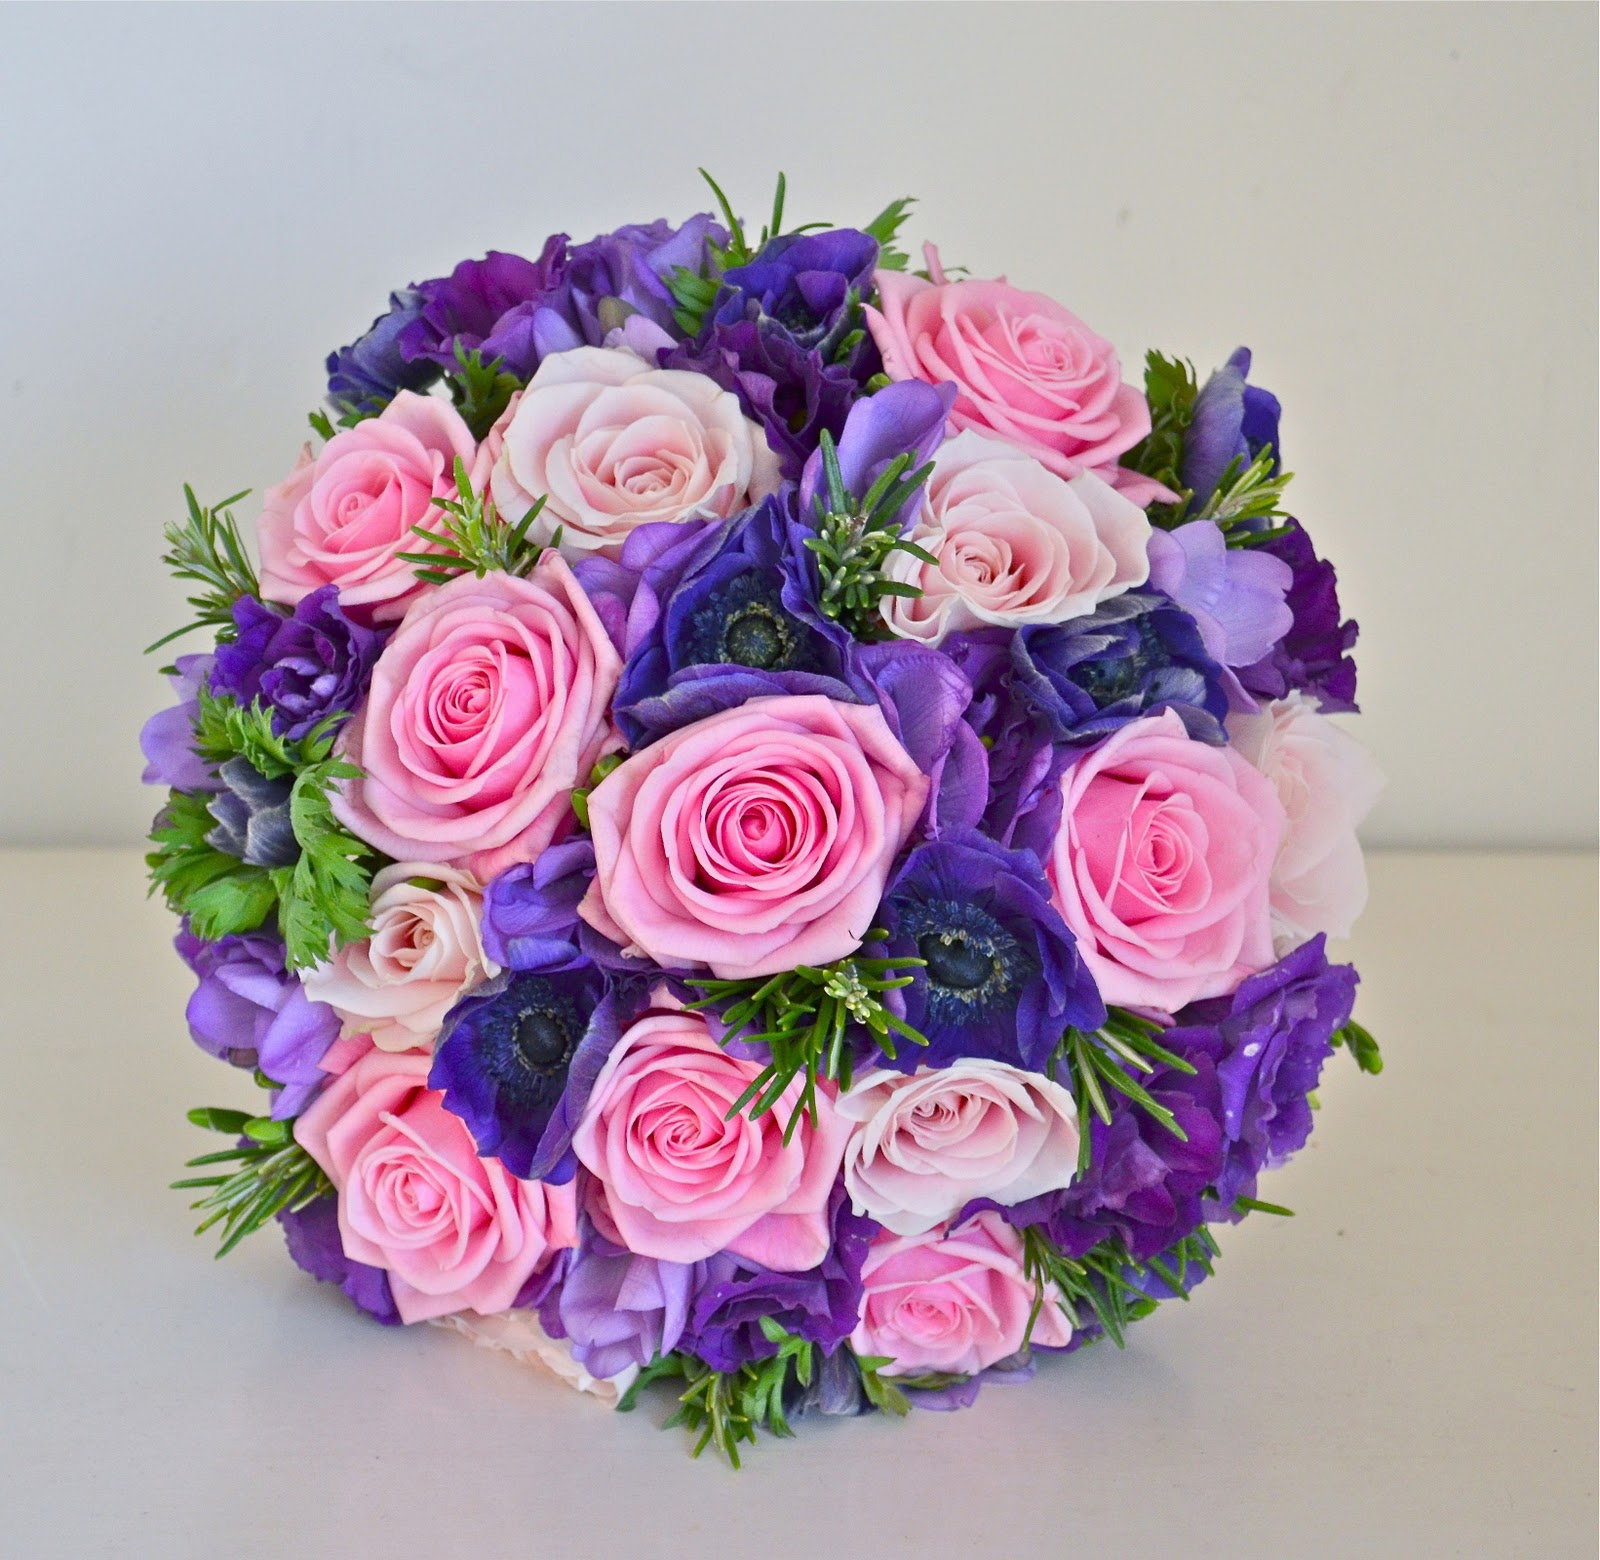 Wedding flower bouquets uk free images at clker vector clip wedding flower bouquets uk image izmirmasajfo